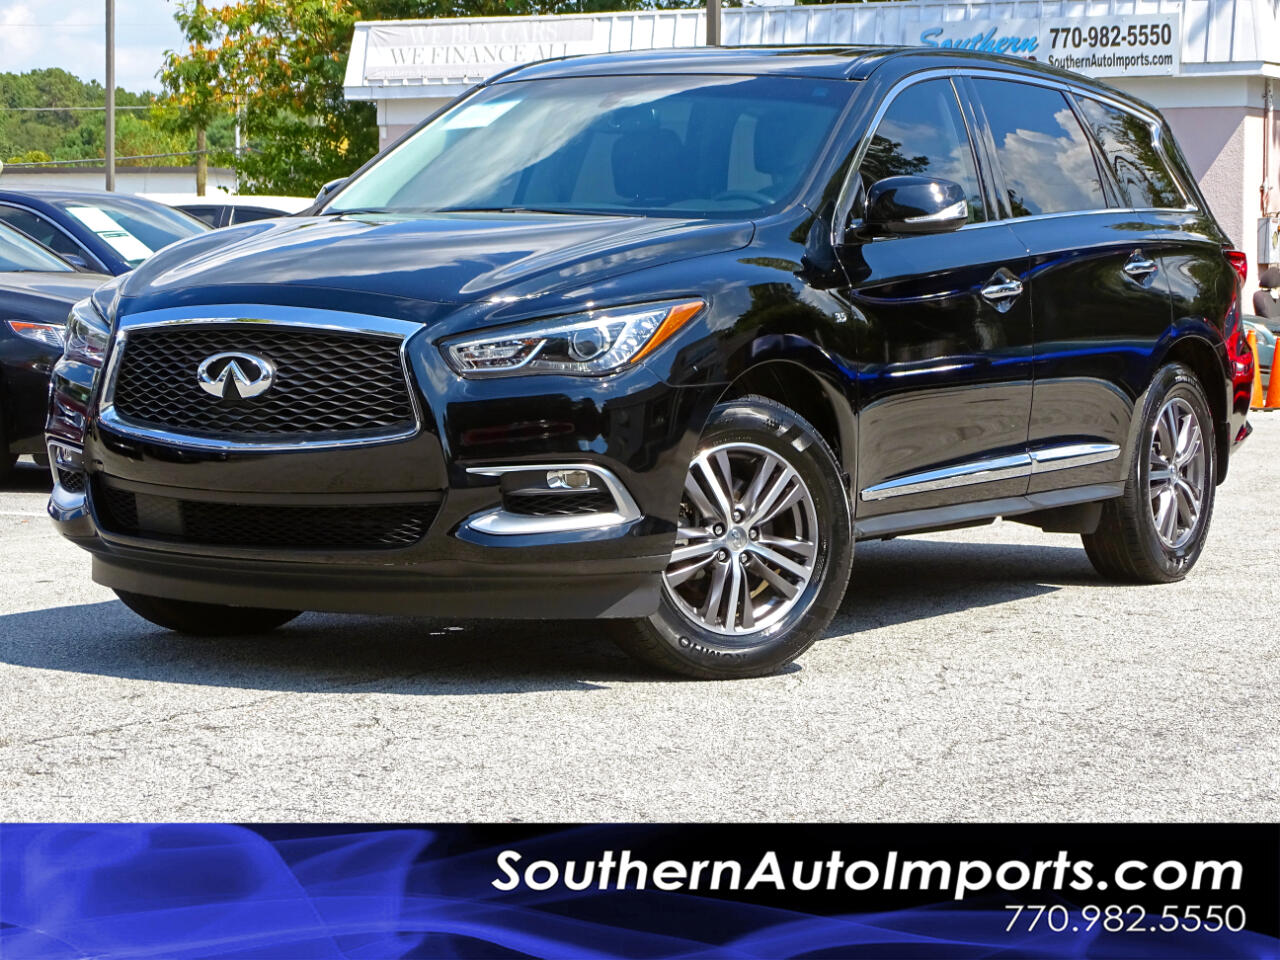 2016 Infiniti QX60 1-OWNER BACK UP CAMERA 3RD ROW SEATS